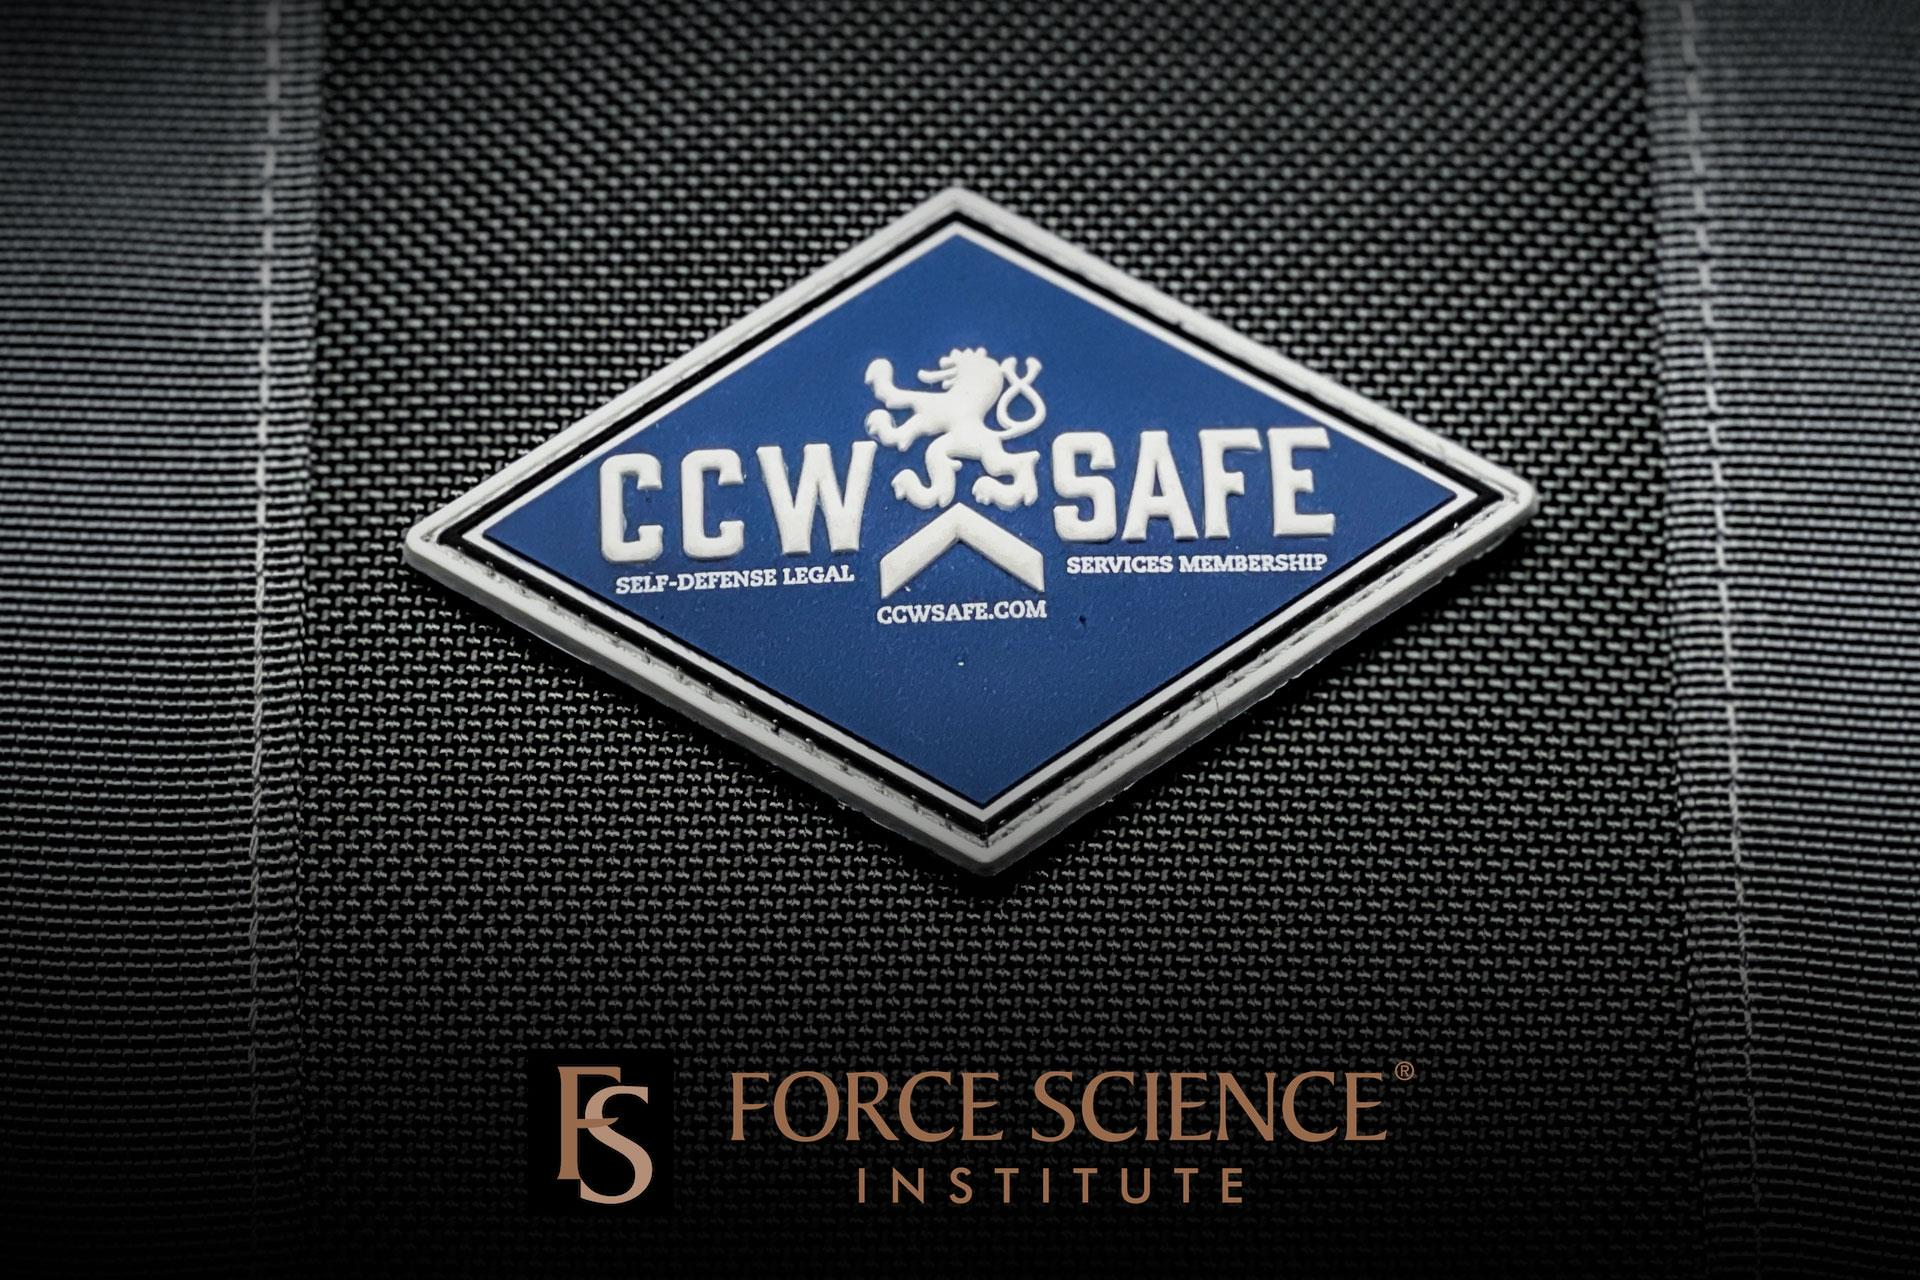 CCW Safe To Host Force Science Institute Train The Trainer Class For Local Law Enforcement Agencies